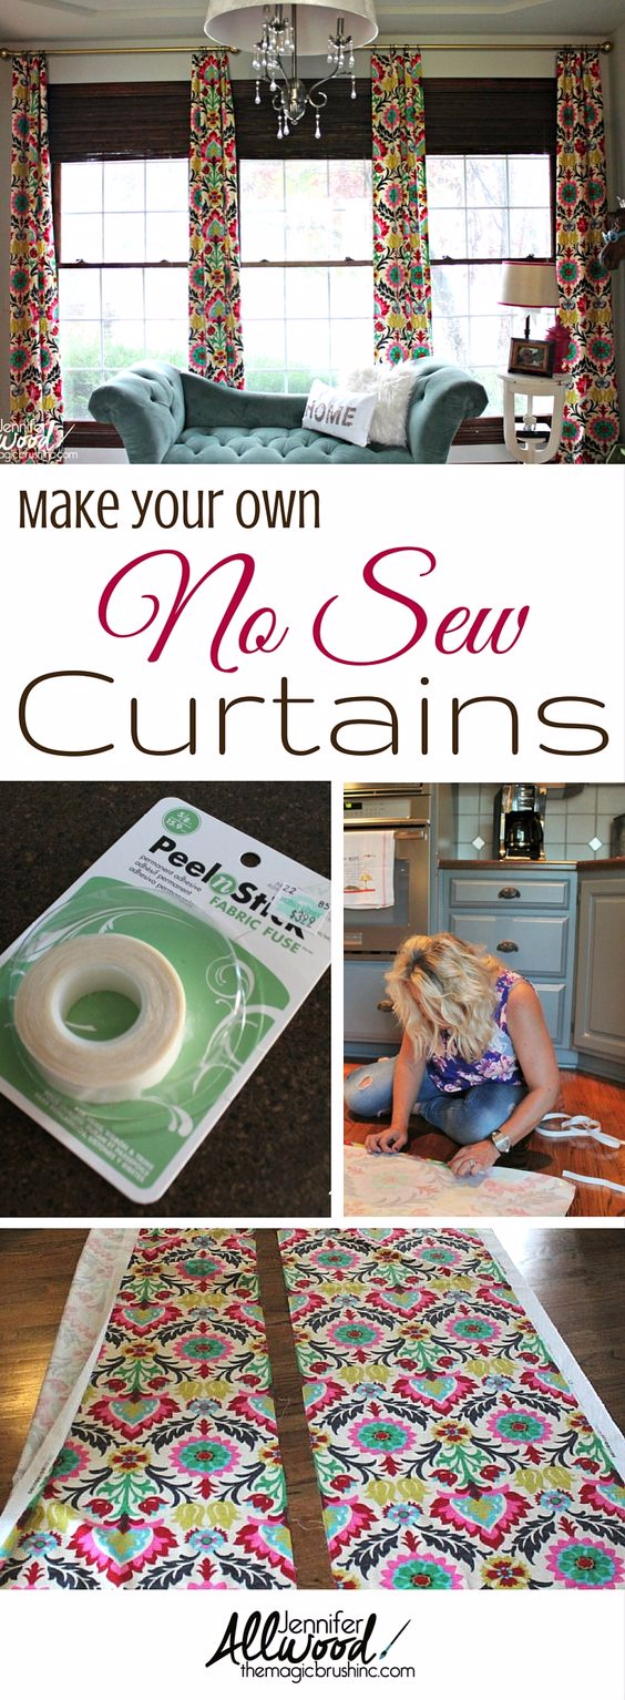 50 DIY Curtains and Drapery Ideas - Make Your Own No Sew Office Curtains - Easy No Sew Ideas and Step by Step Tutorials for Drapes and Curtain Ideas - Cheap and Creative Projects for Bedroom, Living Room, Kitchen, Kids and Teen Rooms - Simple Draperies for Fabric, Made Out of Sheets, Blackout Curtains and Valances #sewing #diydecor #drapes #decoratingideas